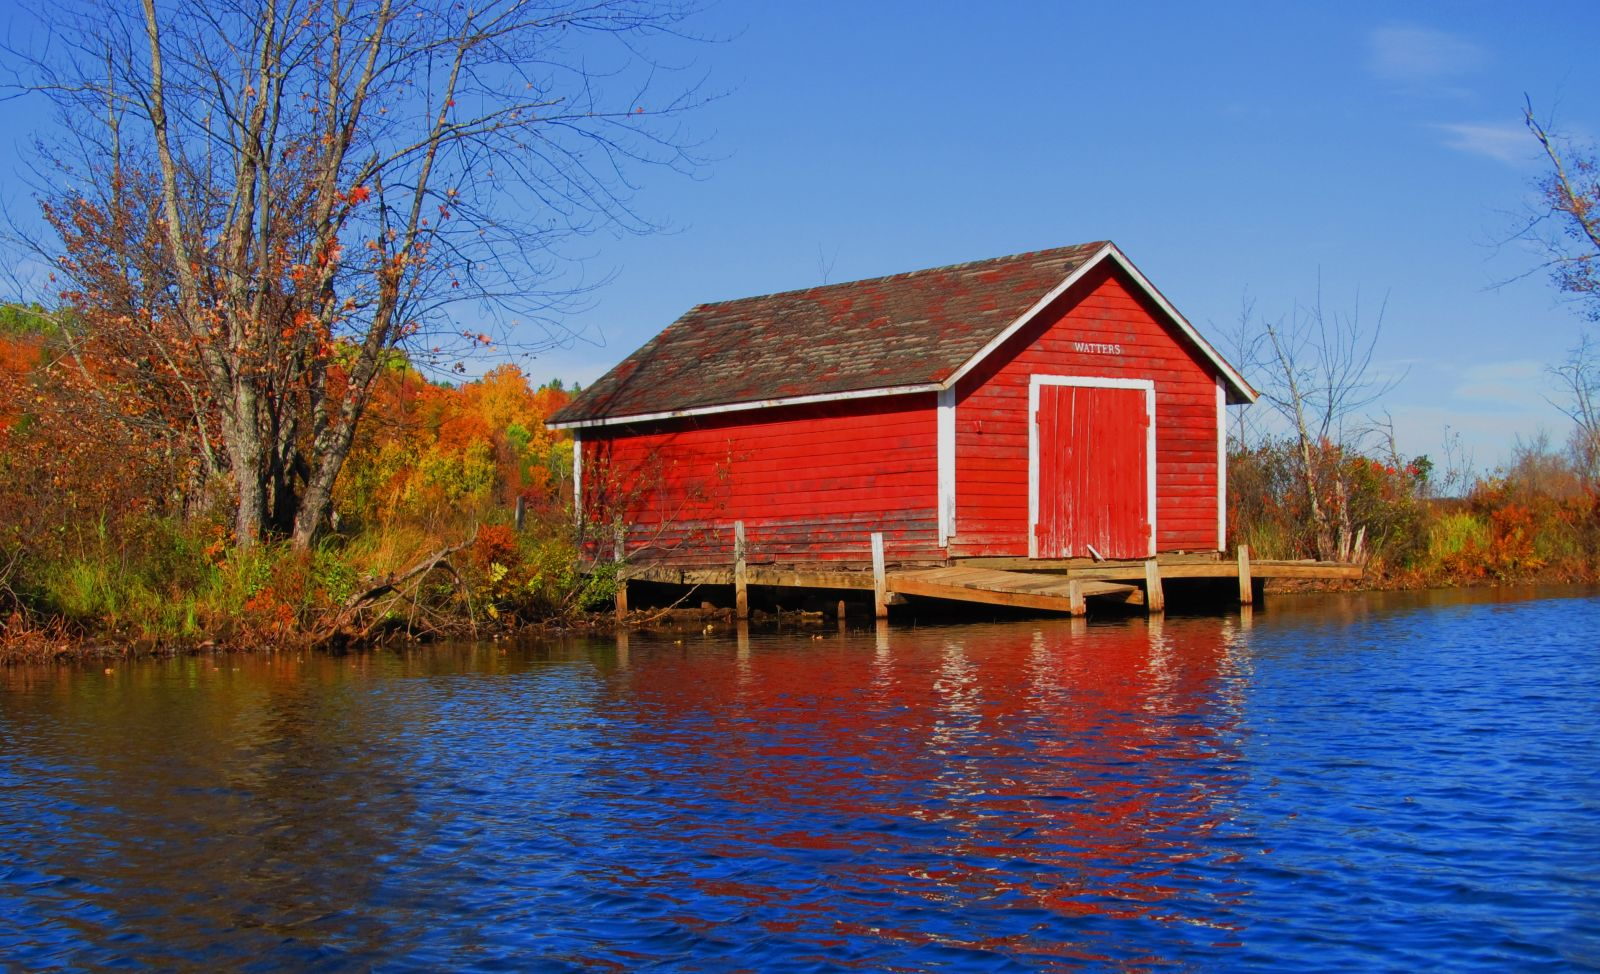 How picturesque is this?  Waters boathouse